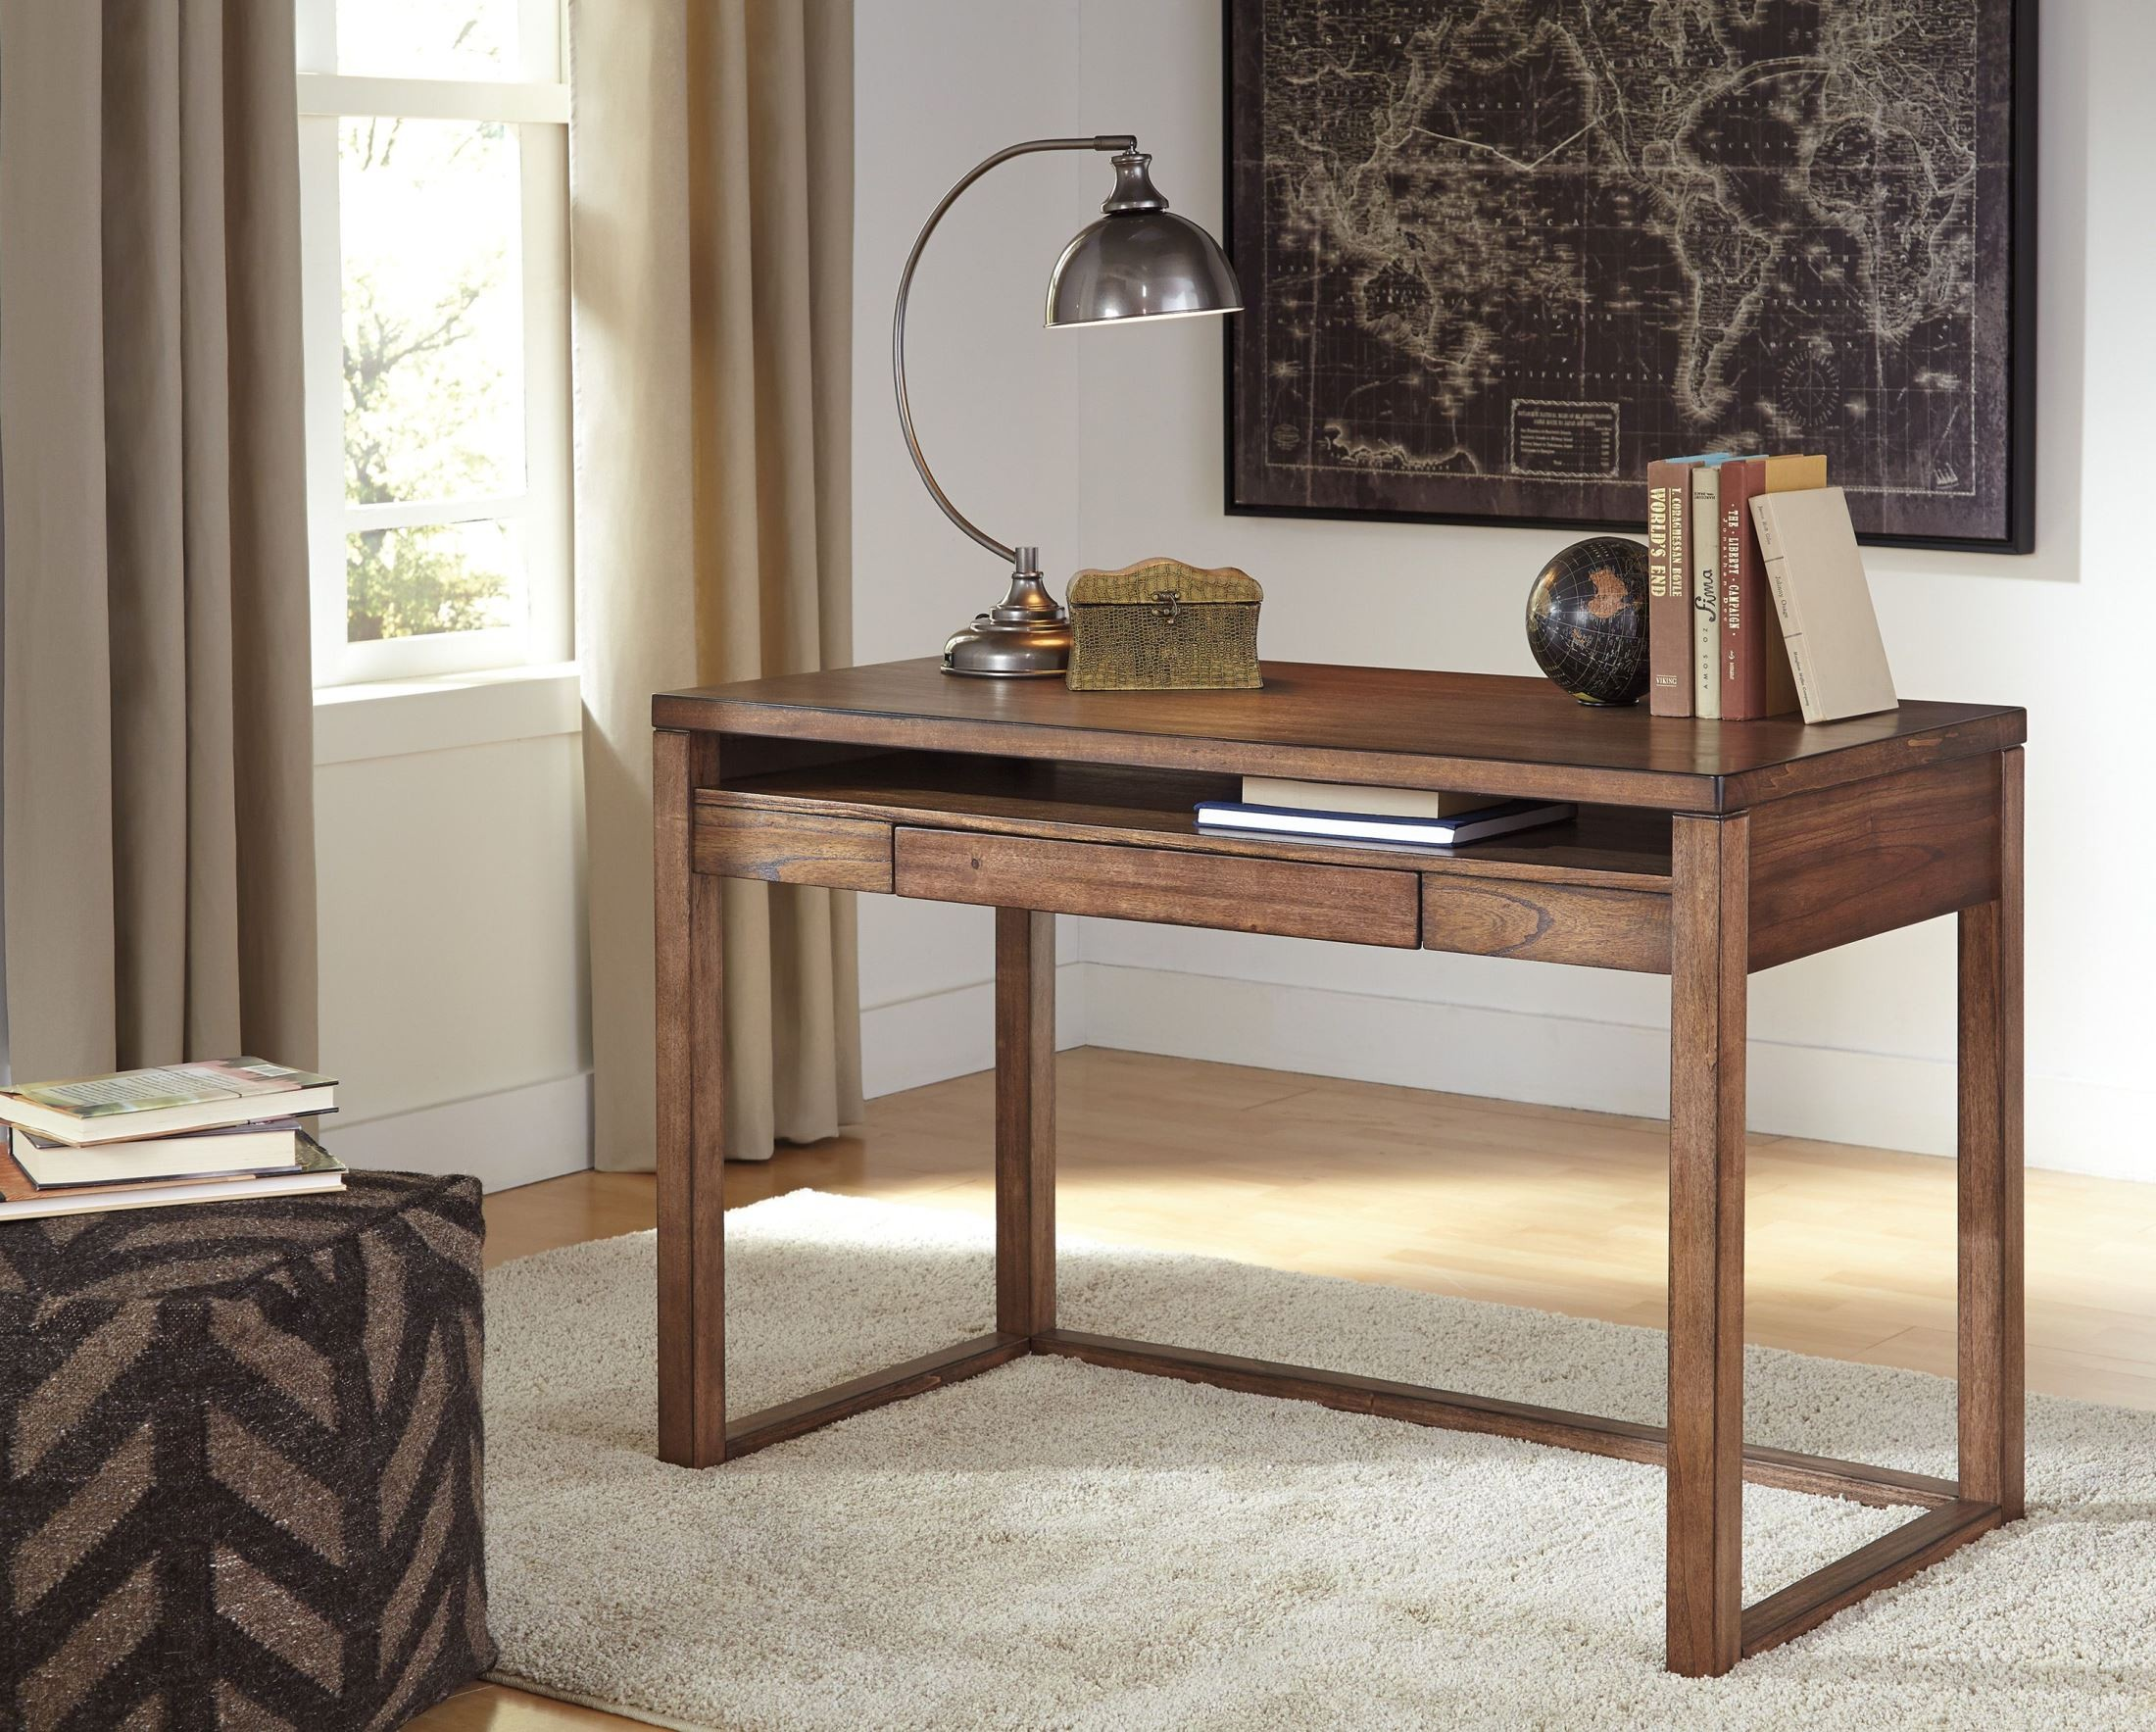 baybrin rustic brown home office small desk from ashley h587 10 coleman furniture. Black Bedroom Furniture Sets. Home Design Ideas